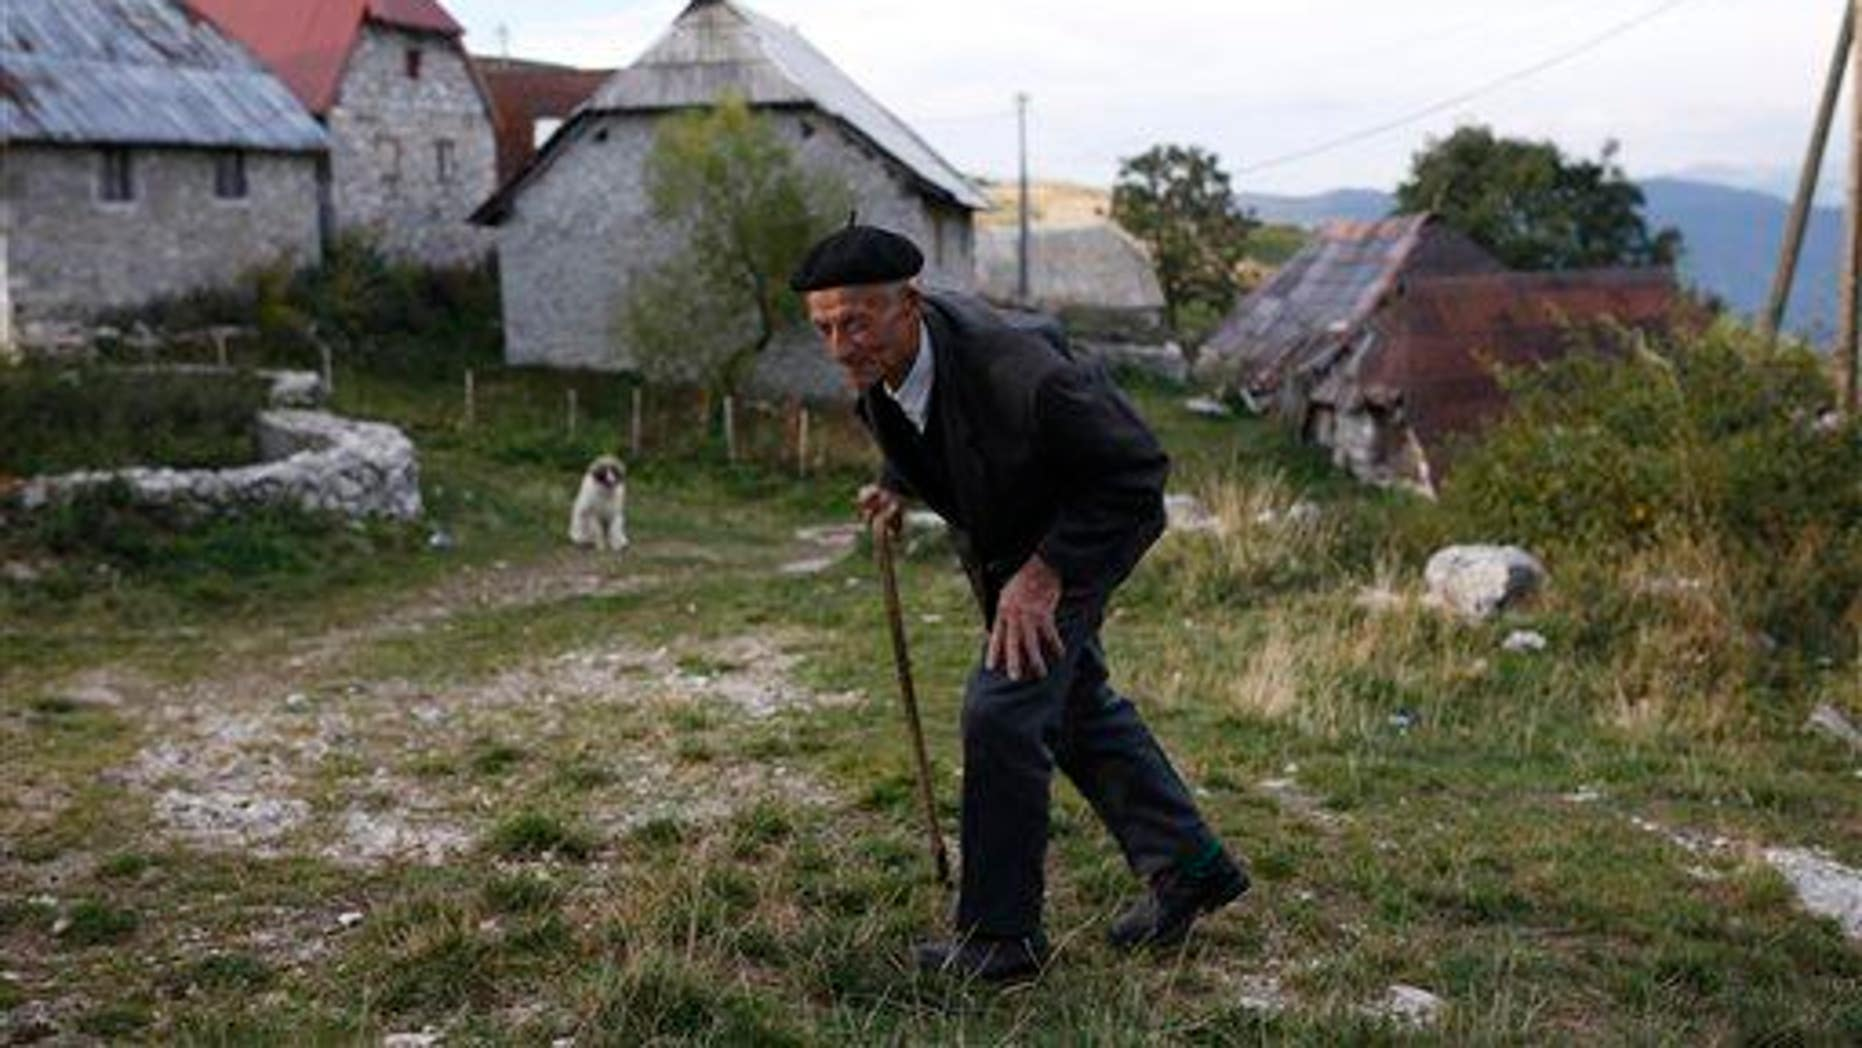 An elderly man walks in the remote mountain village of Lukomir, south of Sarajevo, Bosnia,  on Sept. 24, 2015.